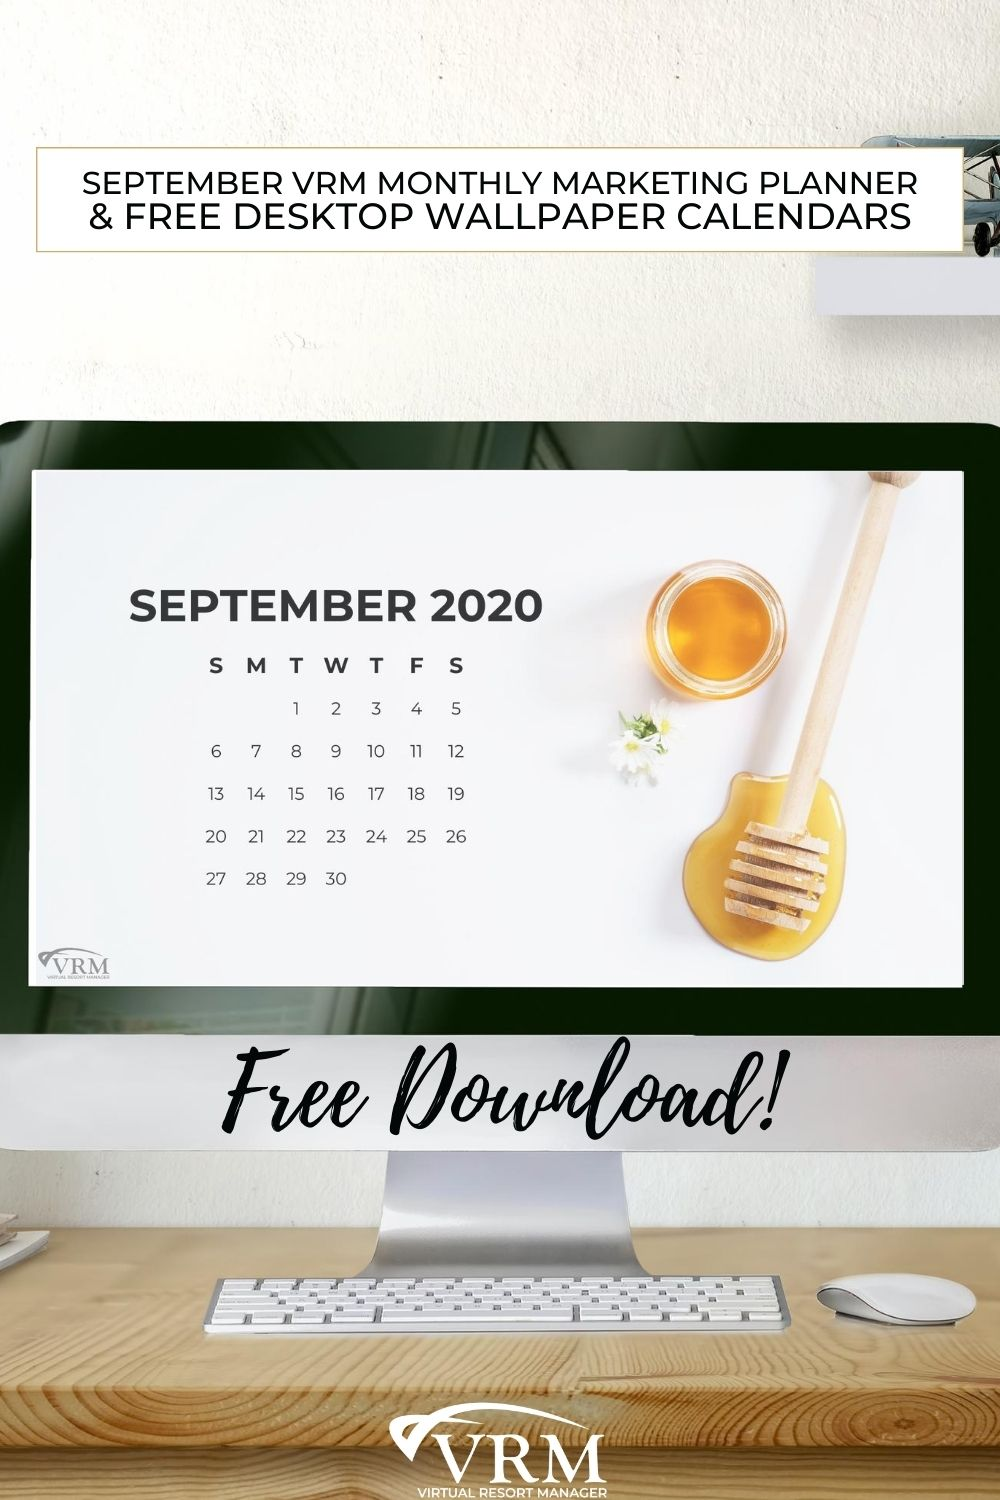 September VRM Monthly Marketing Planner and Free Desktop Wallpaper Calendars